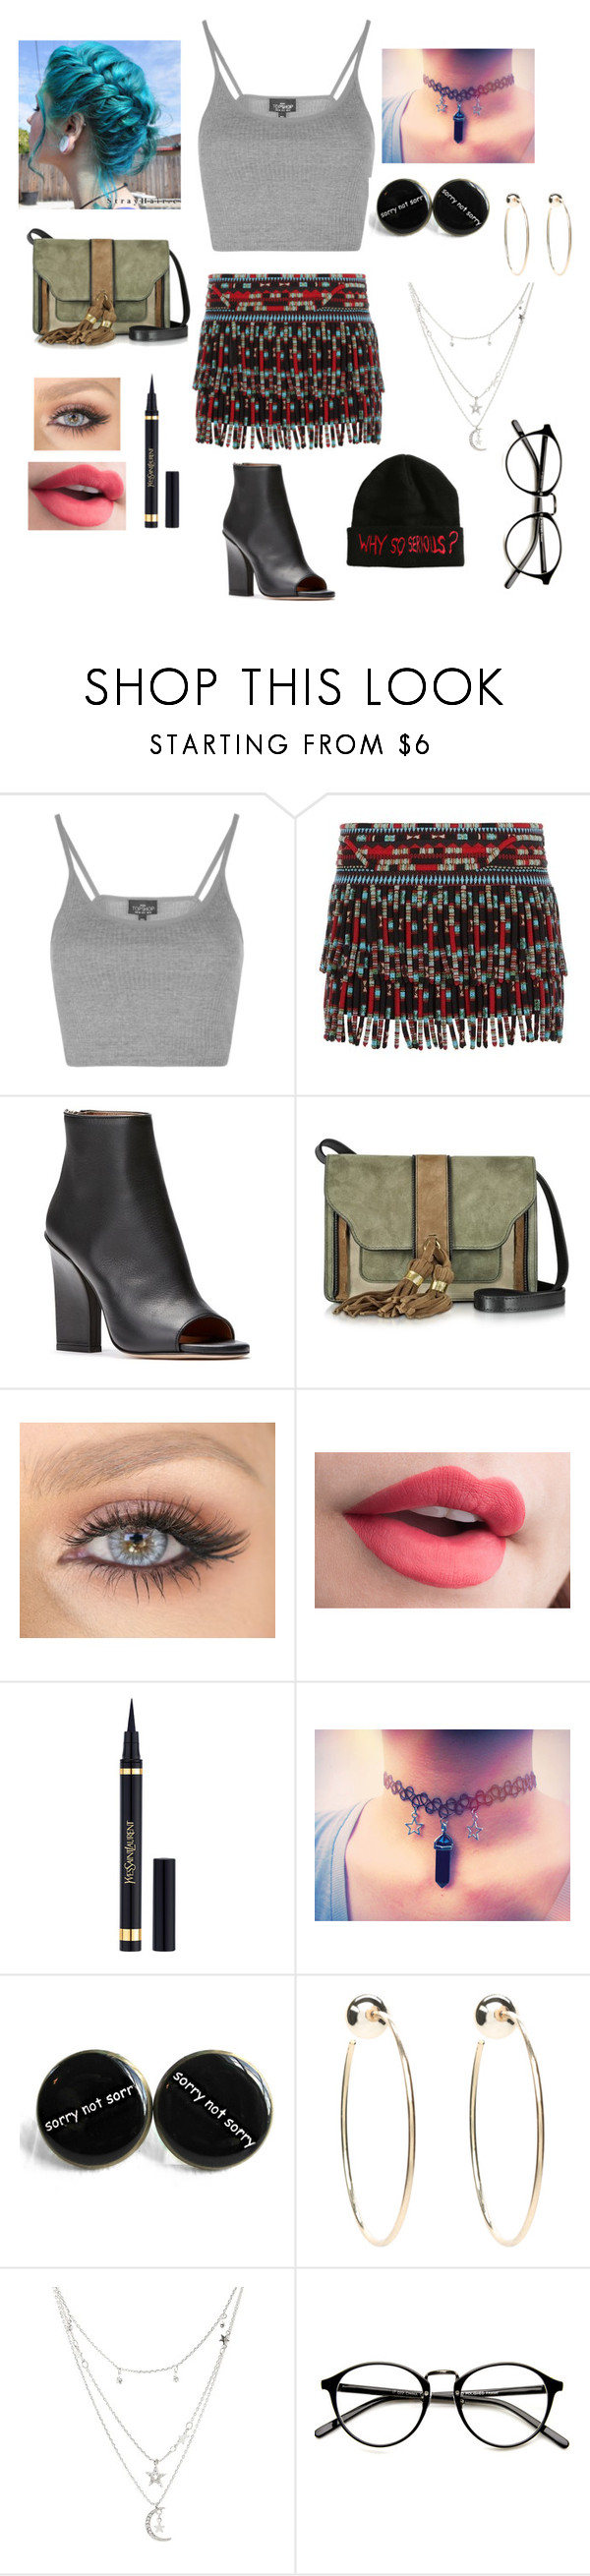 """""""Festivals!"""" by lonelykat ❤ liked on Polyvore featuring Topshop, Valentino, L'Autre Chose, Yves Saint Laurent, Bebe and Charlotte Russe"""